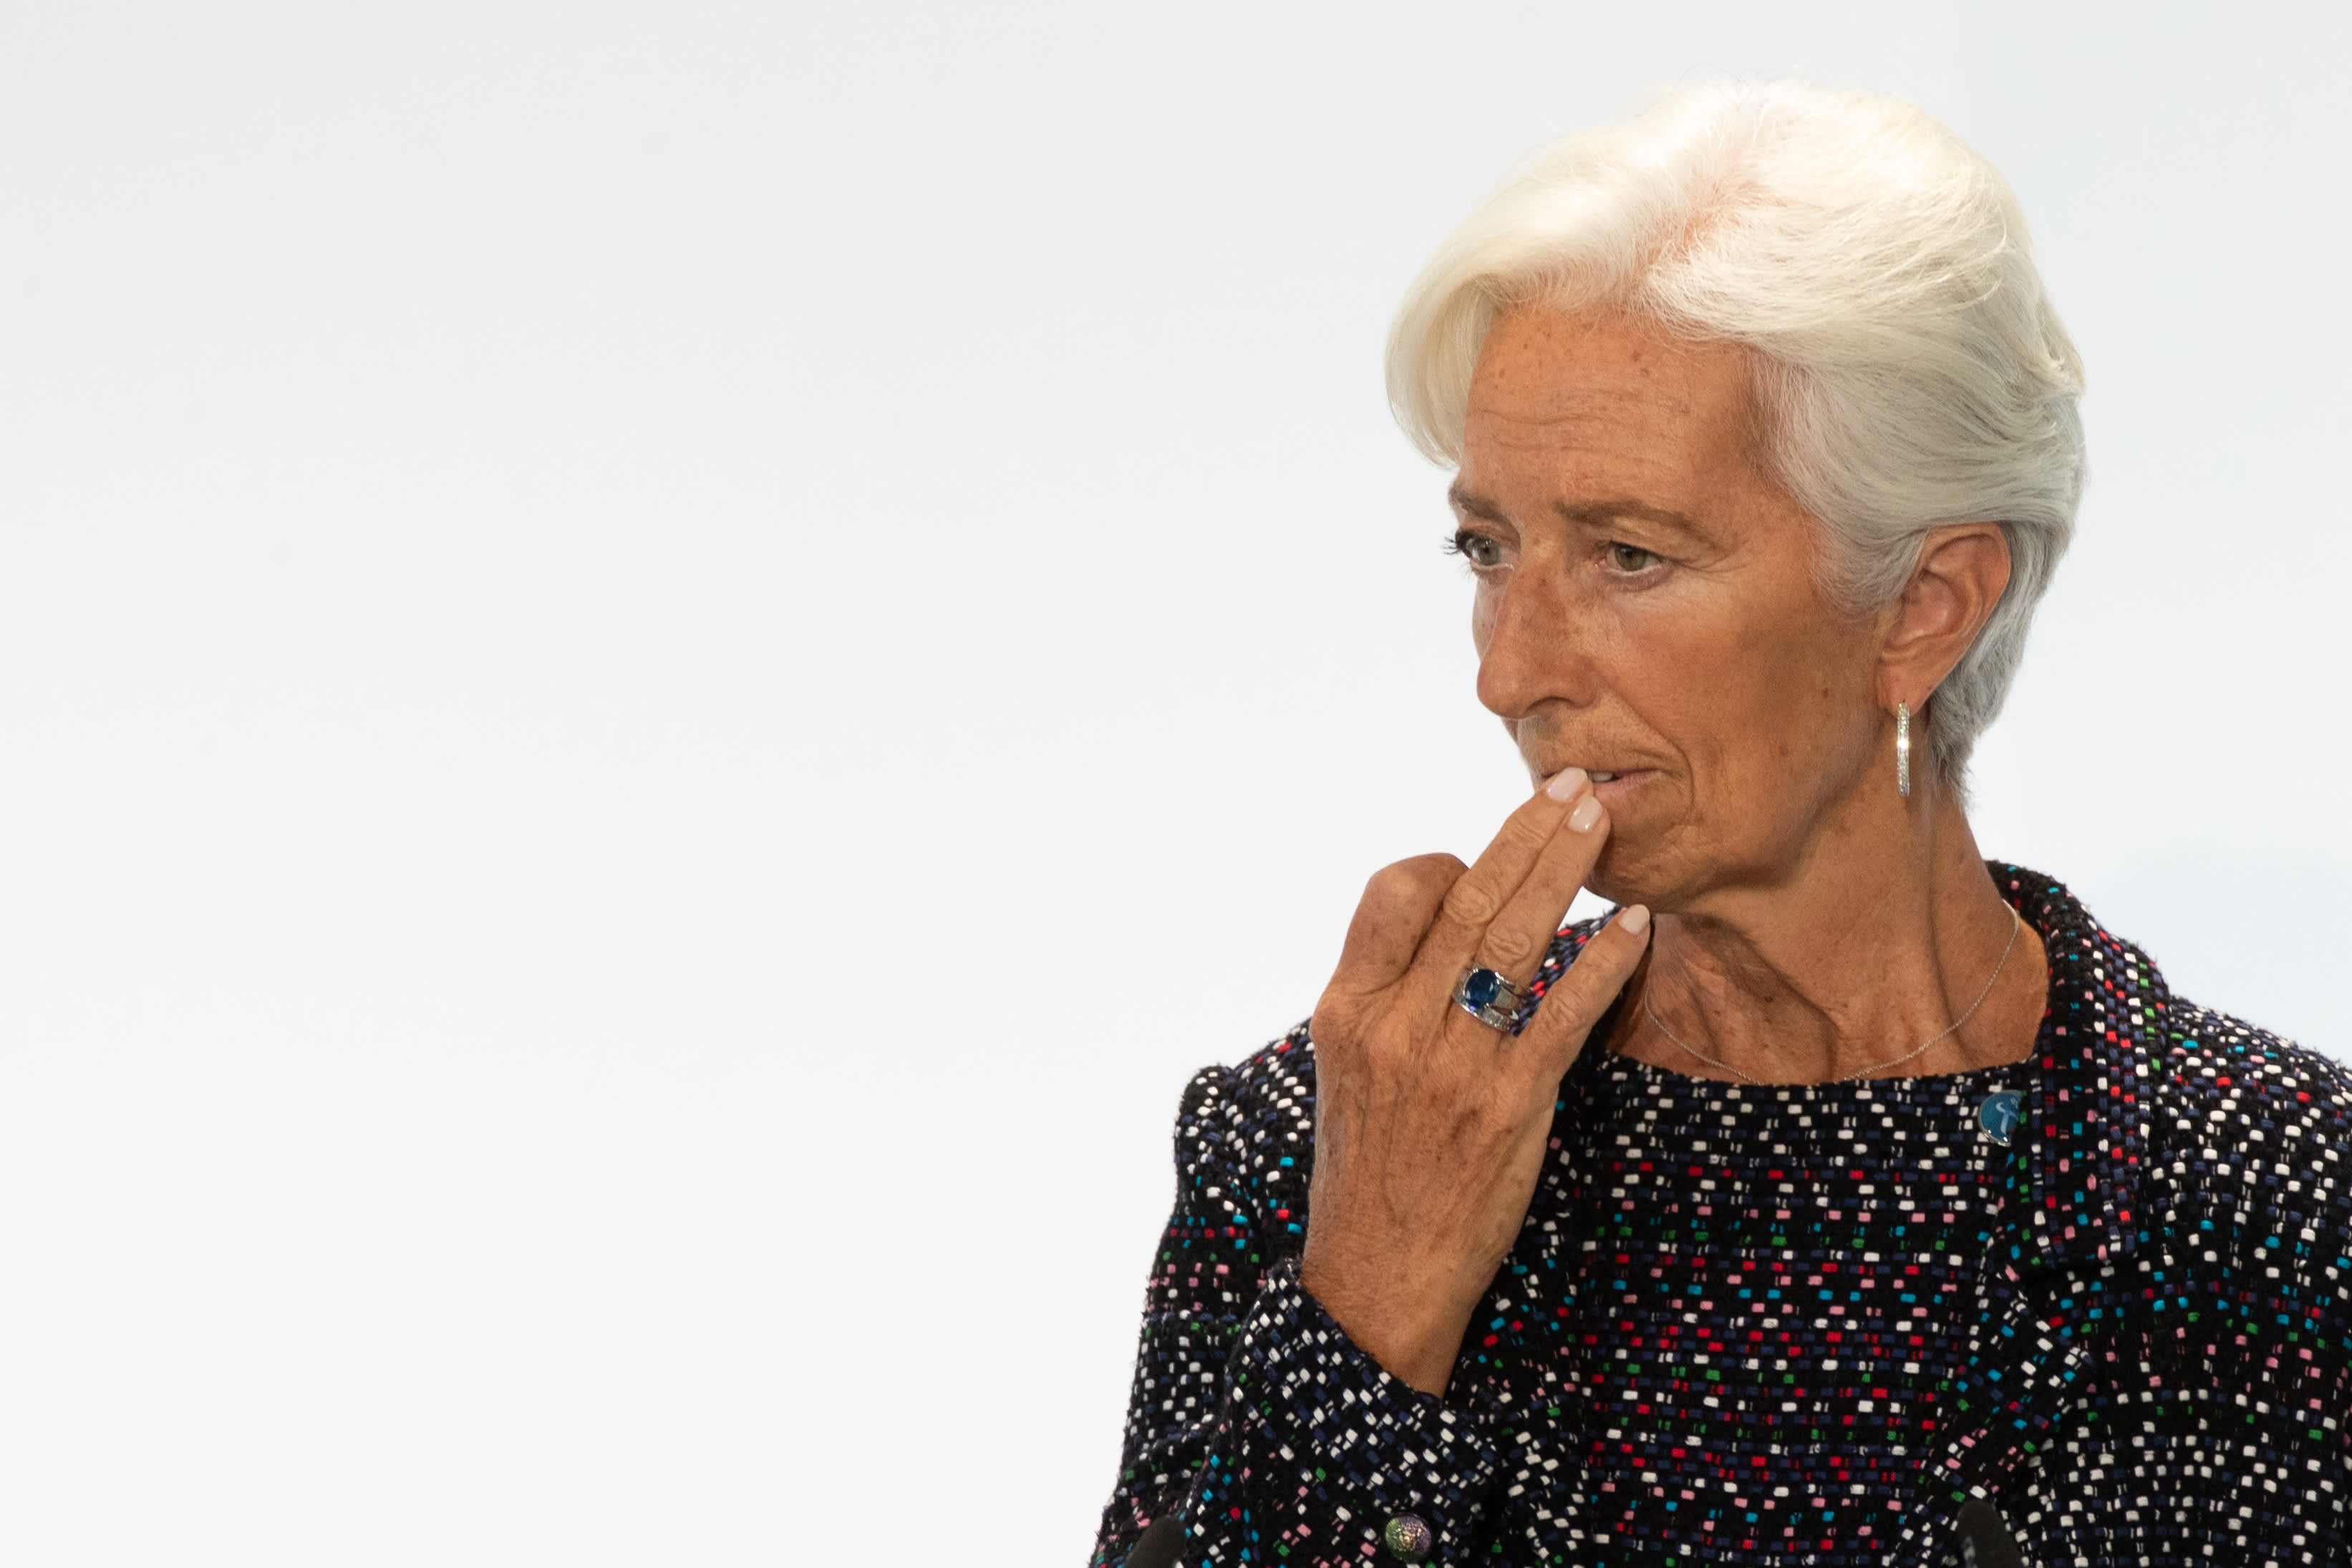 European Central Bank does not respond to inflation peaks: Lagarde